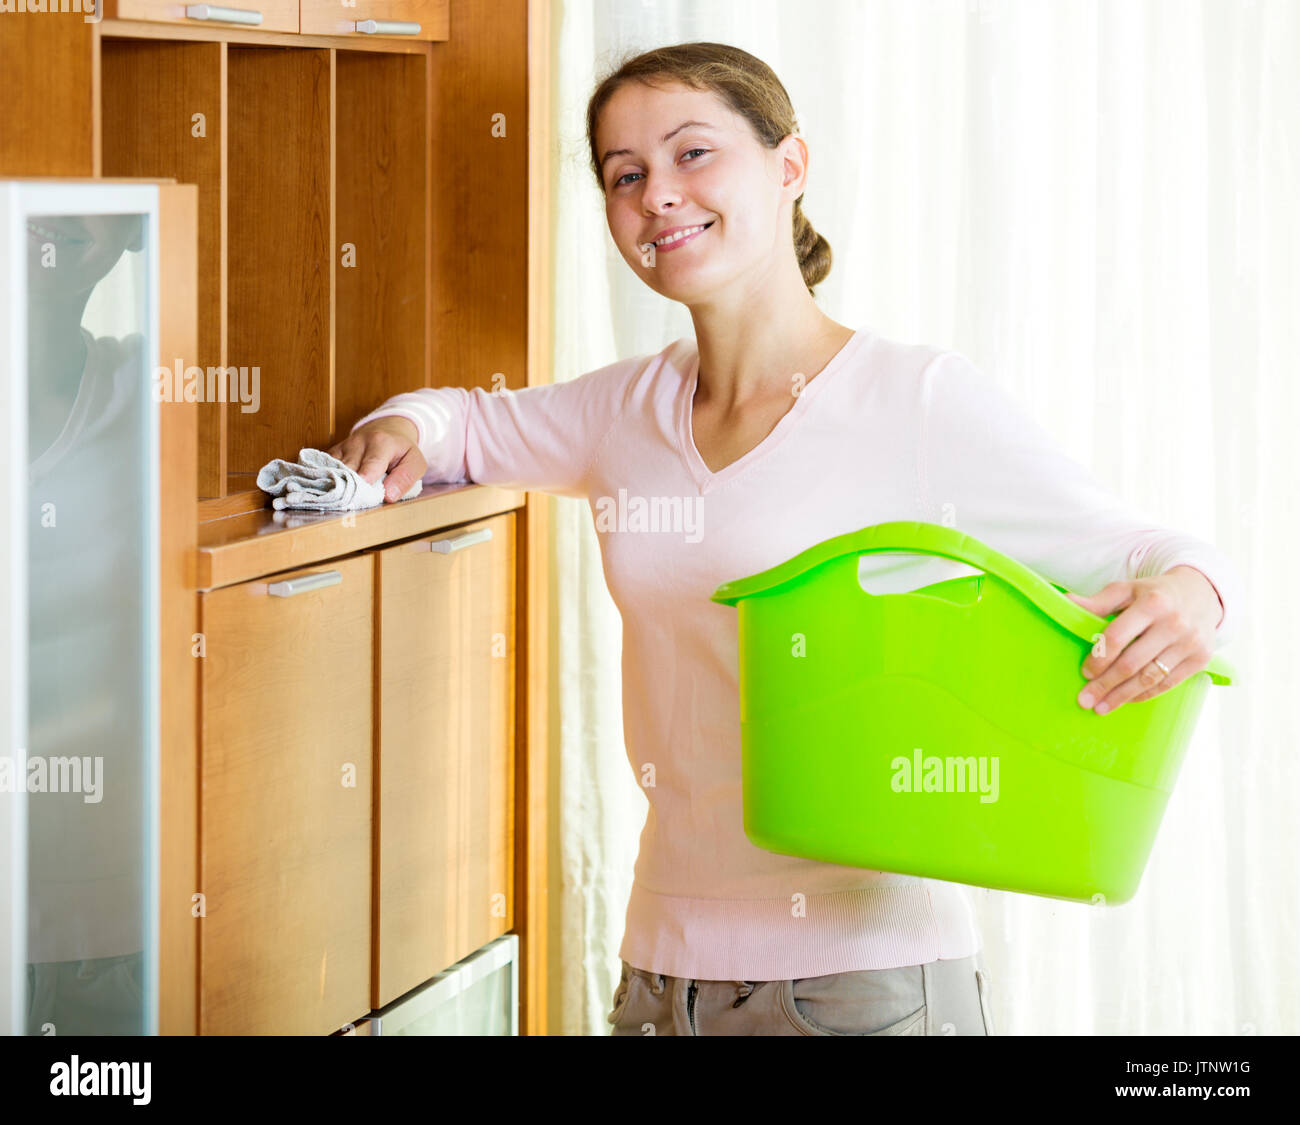 dusting furniture. Portrait Adult Woman Dusting Furniture At Home And Smiling - Stock Image F